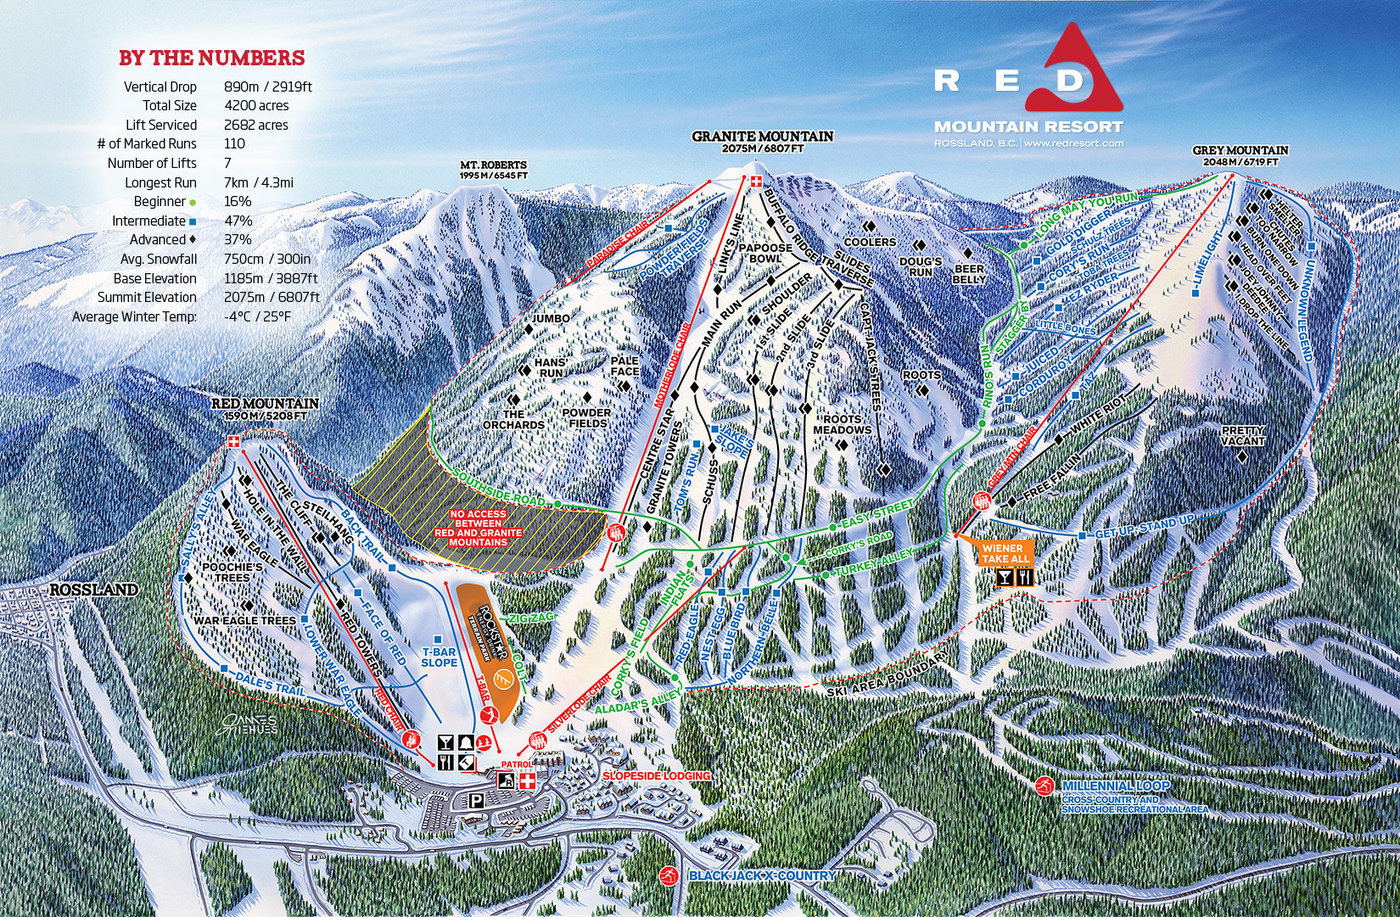 RED Mountain Resort Trail Map